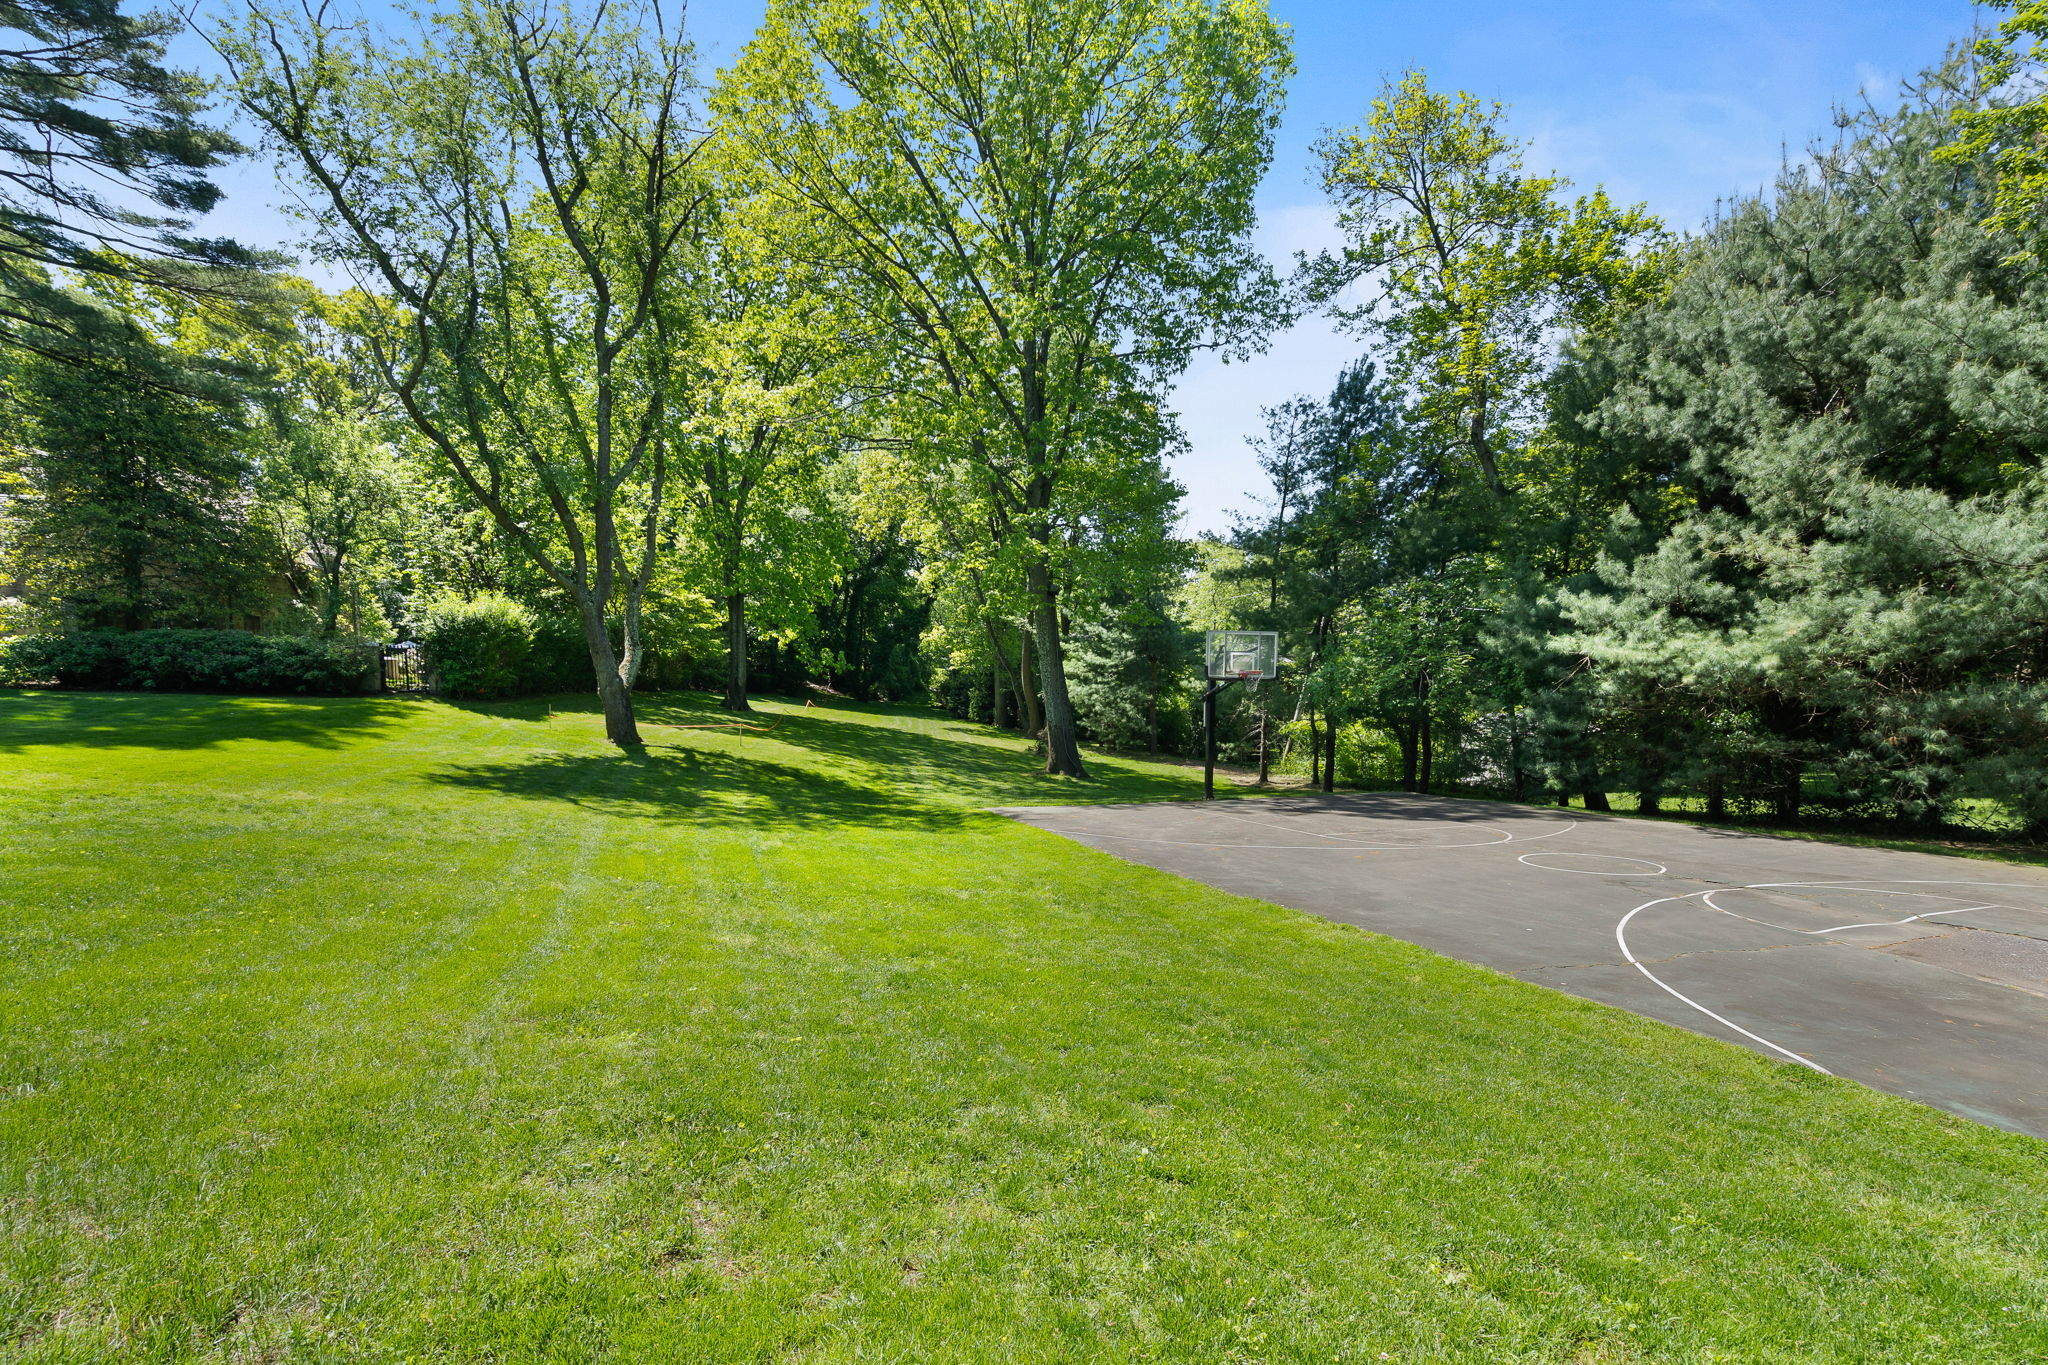 2a Melby Ln, East Hills, NY 11576, US Photo 88